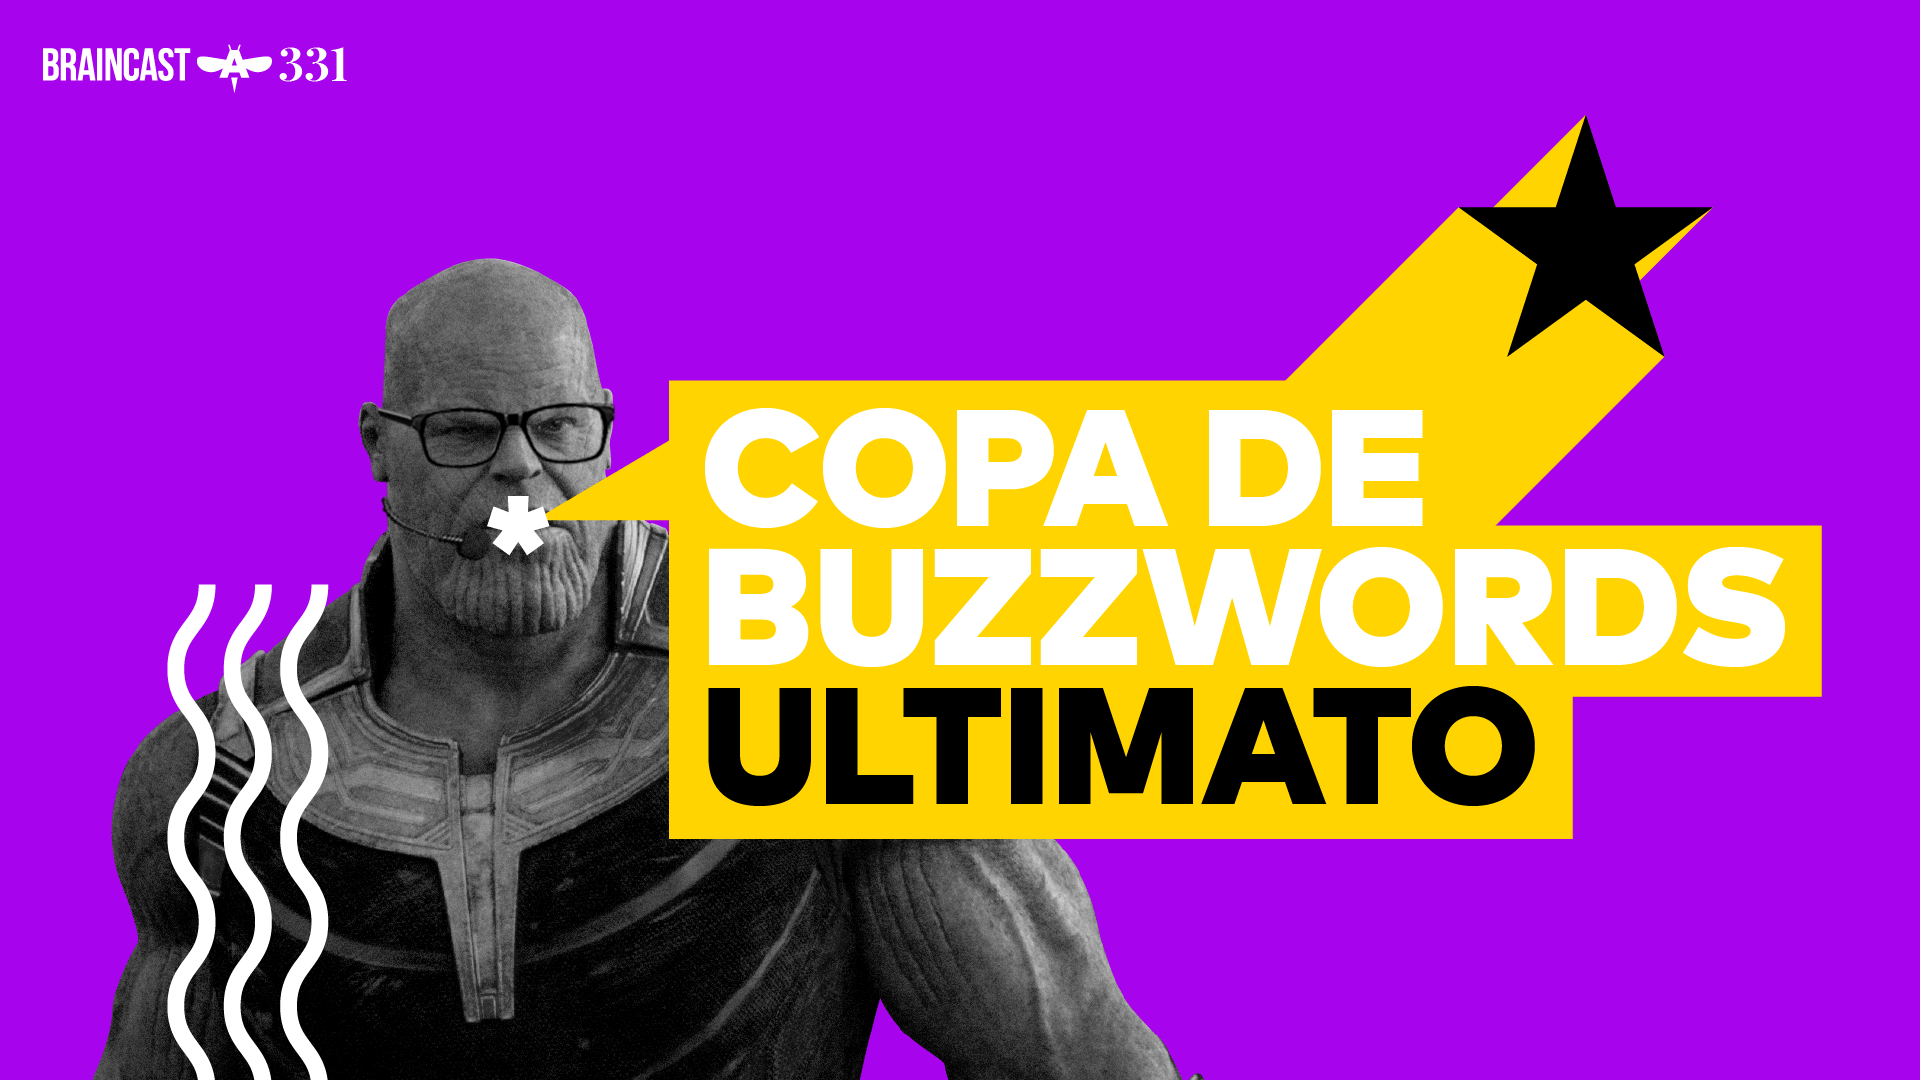 Braincast 331 – Copa de Buzzwords: Ultimato